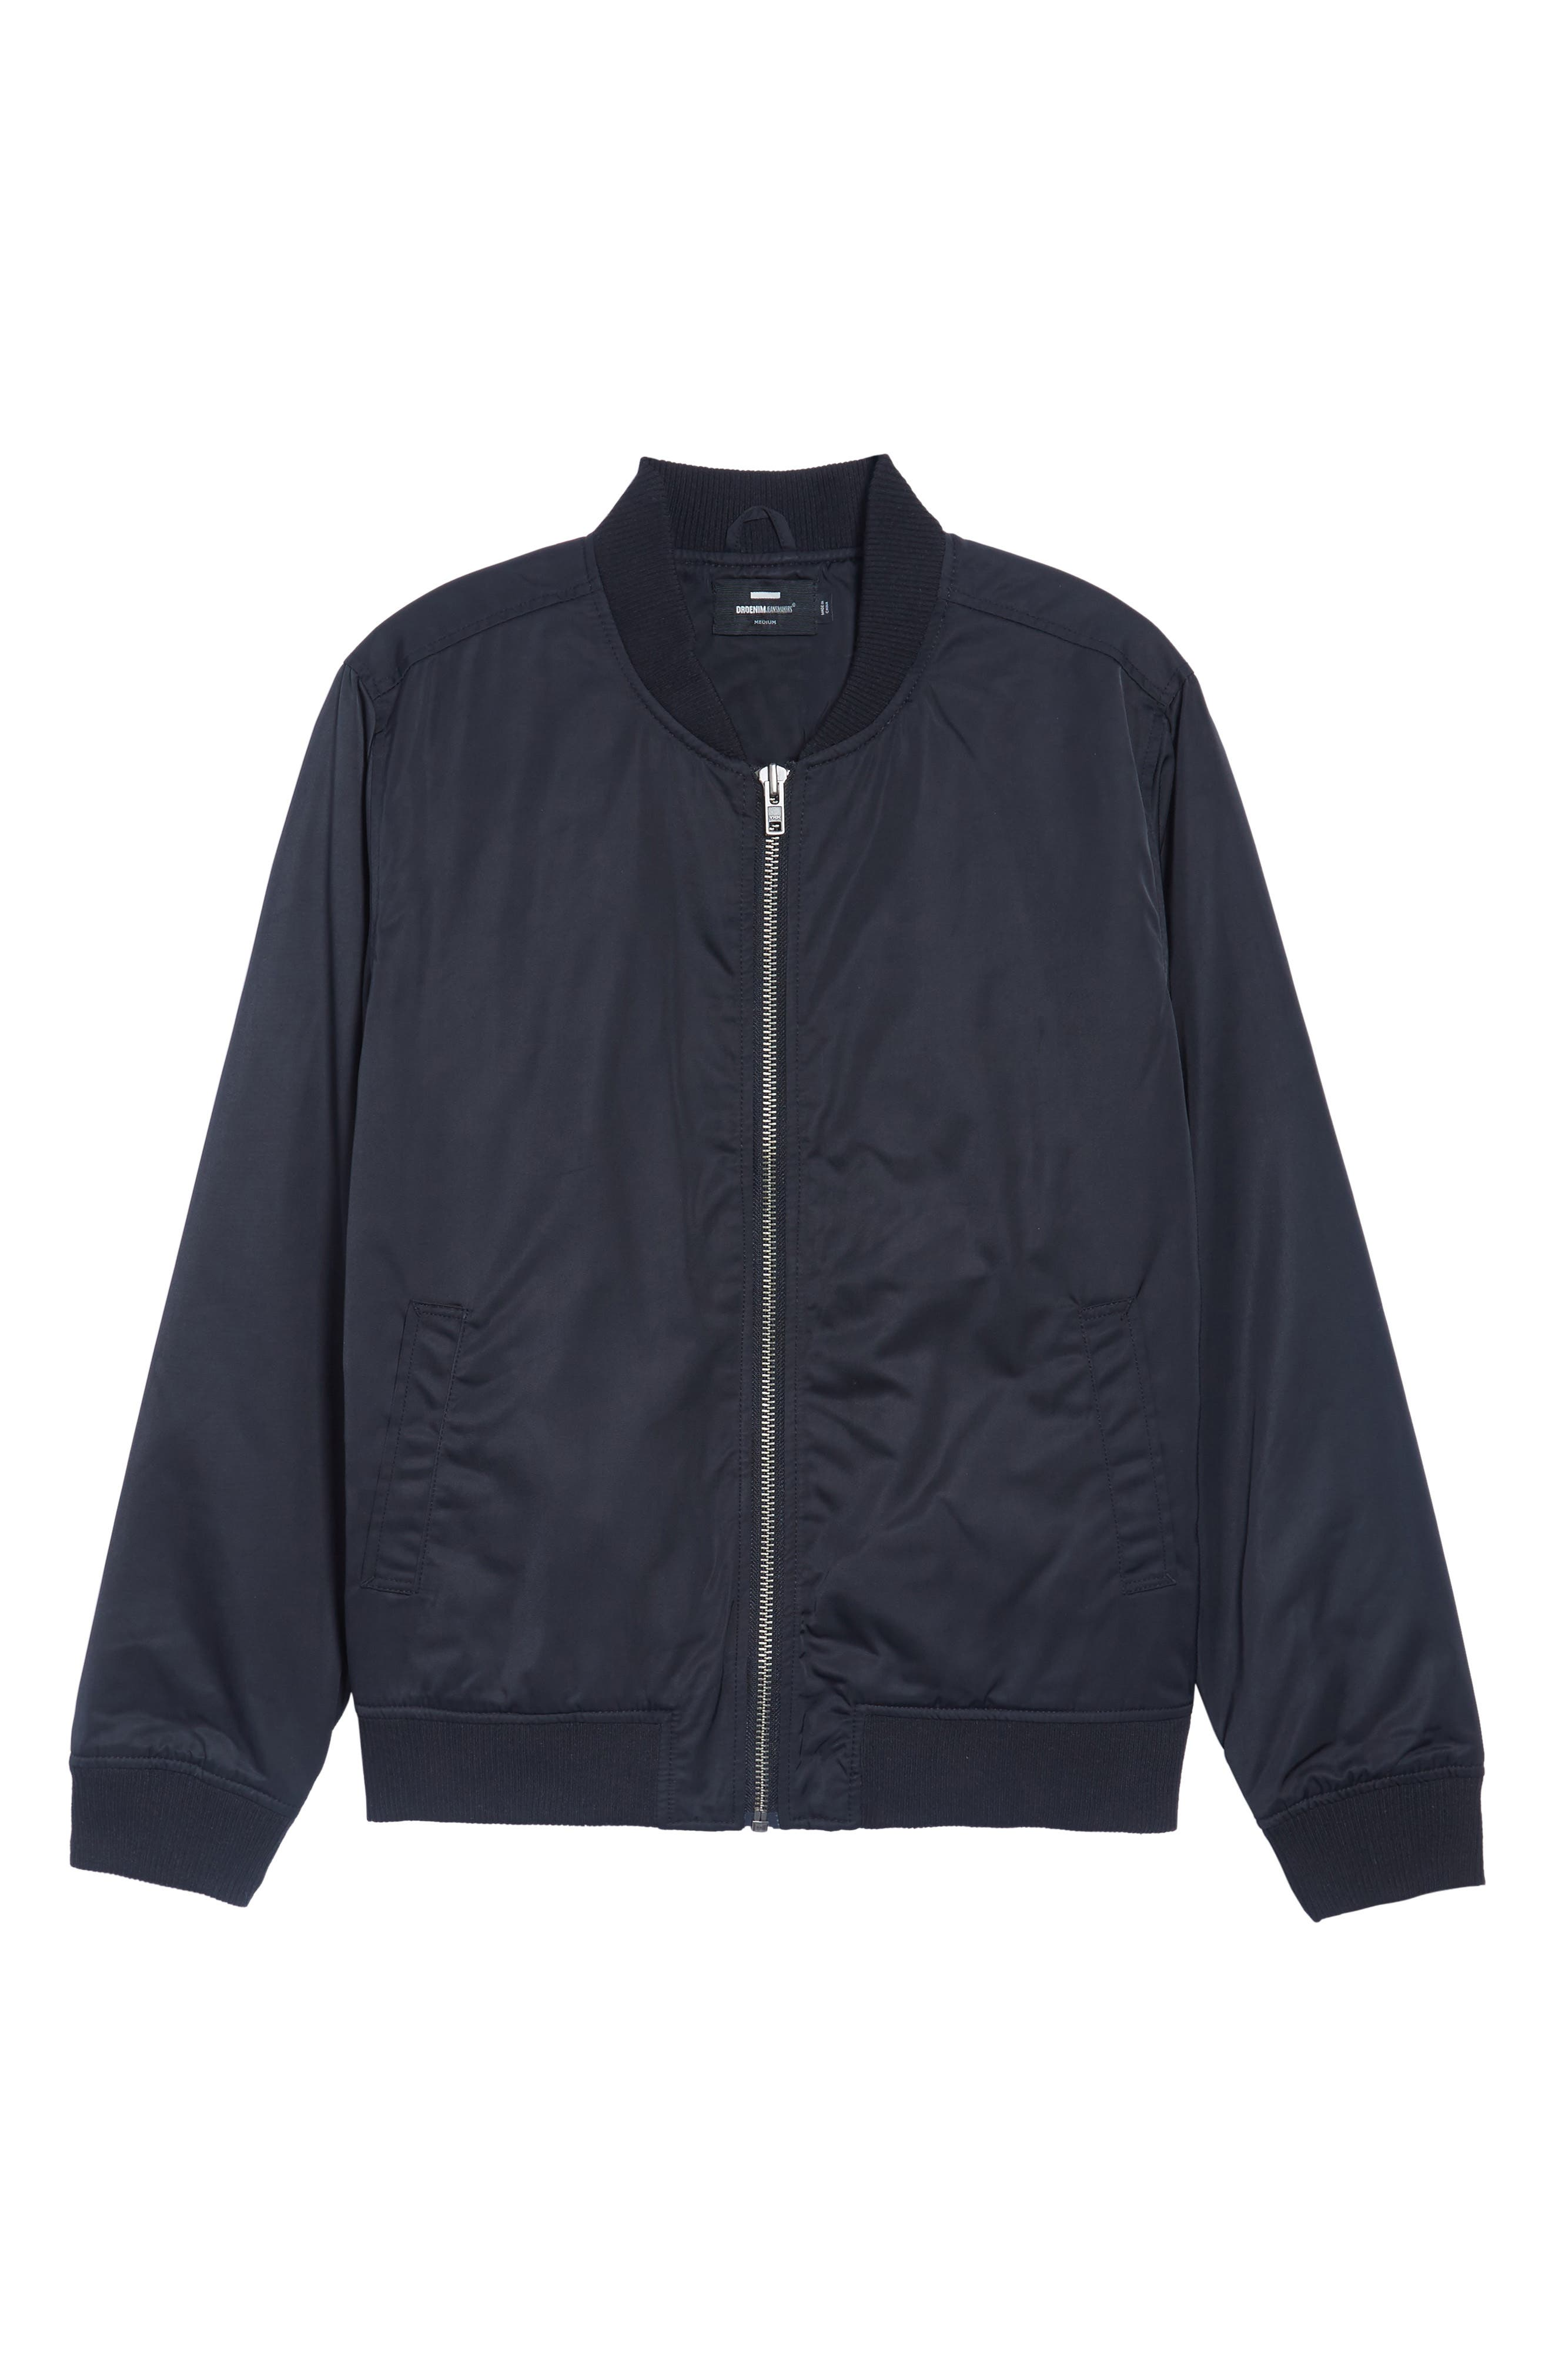 Mason Bomber Jacket,                         Main,                         color, Black